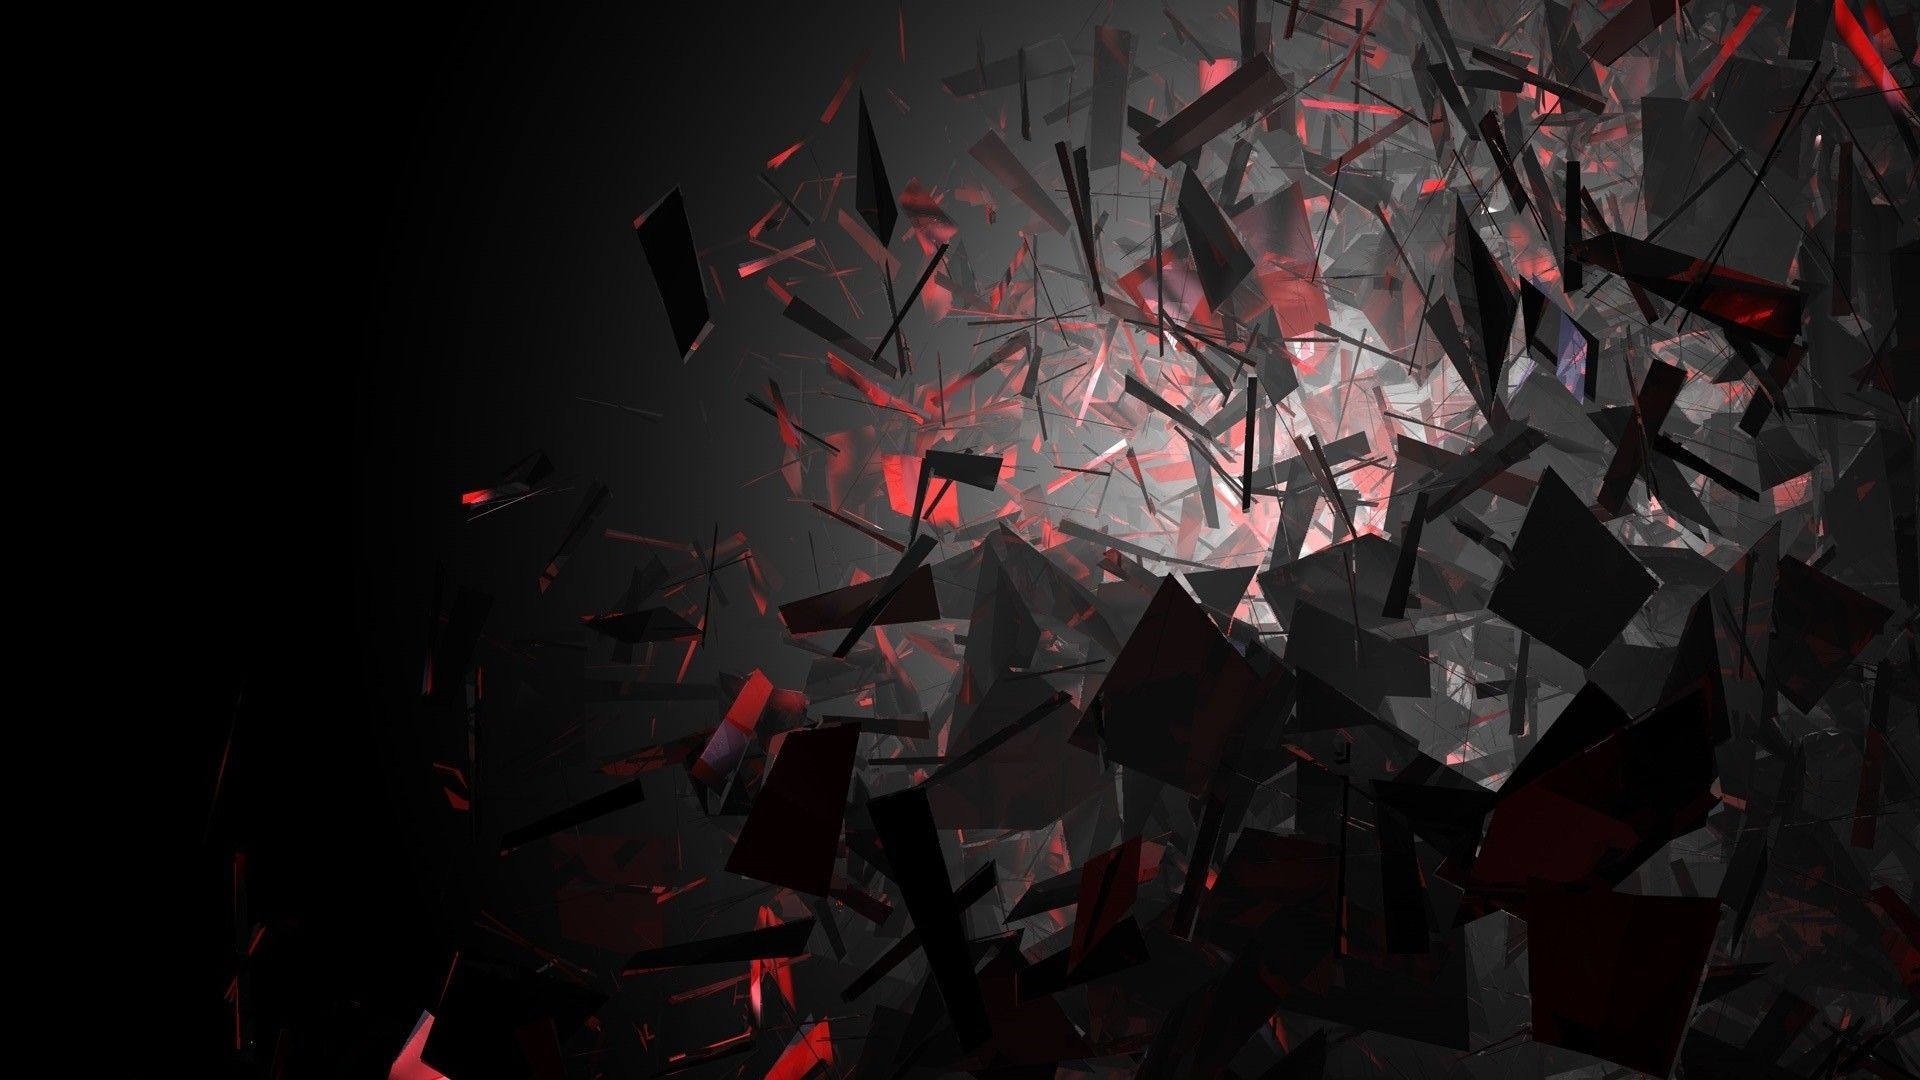 3d Abstract Background Hd Wallpaper Abstrak